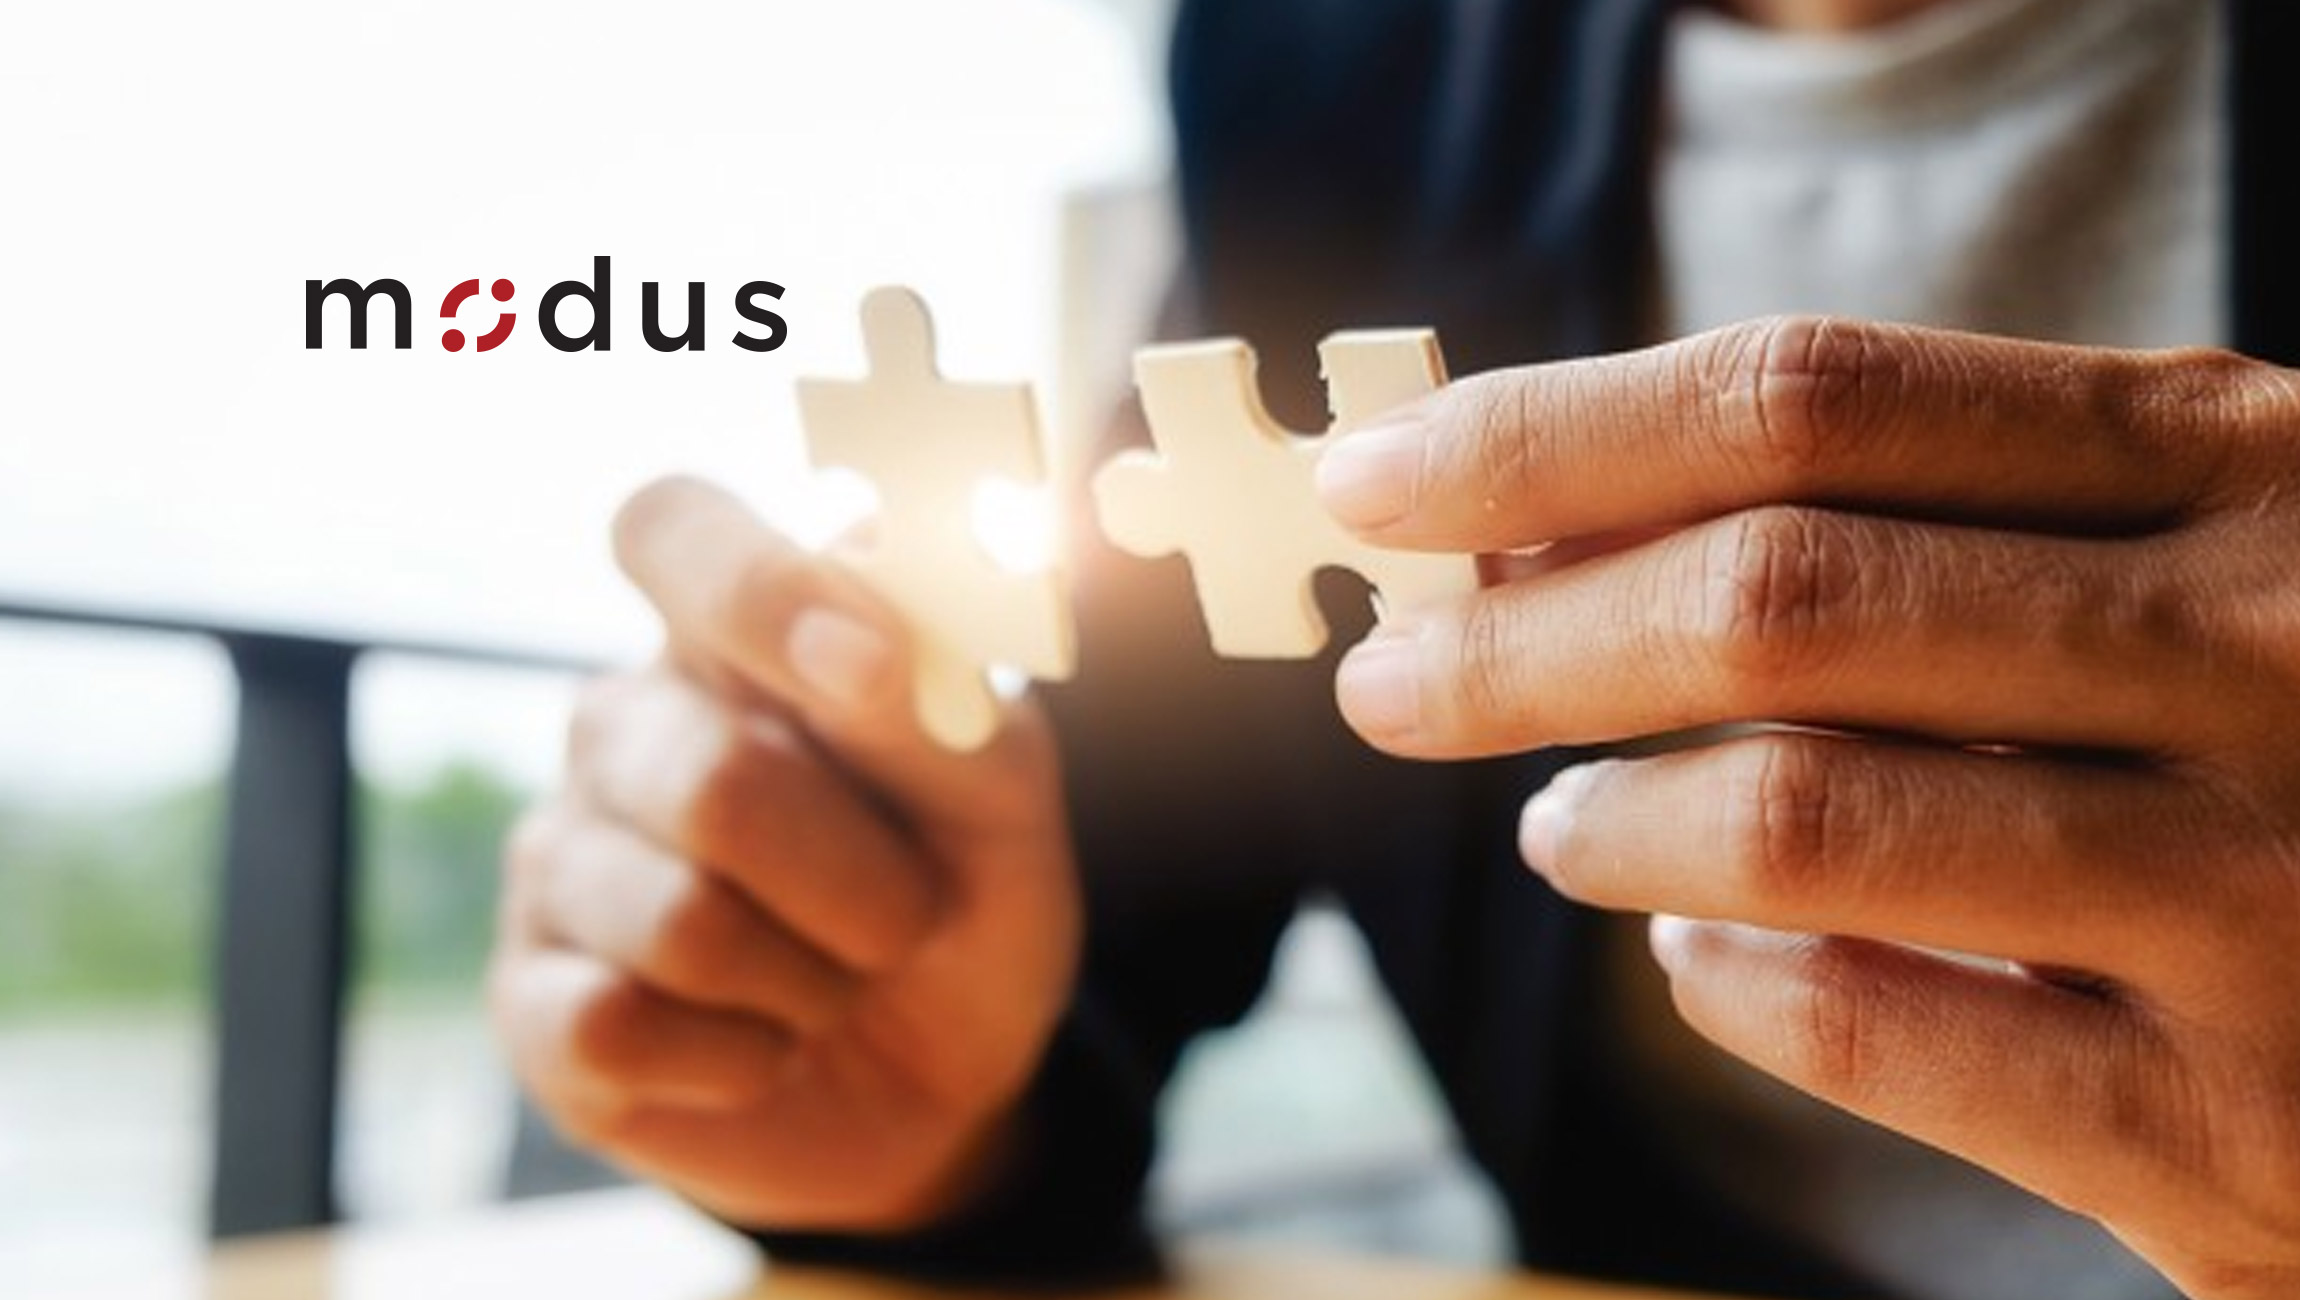 Modus Announces the Appointment of Jeremy Schultz as President and Chief Operating Officer